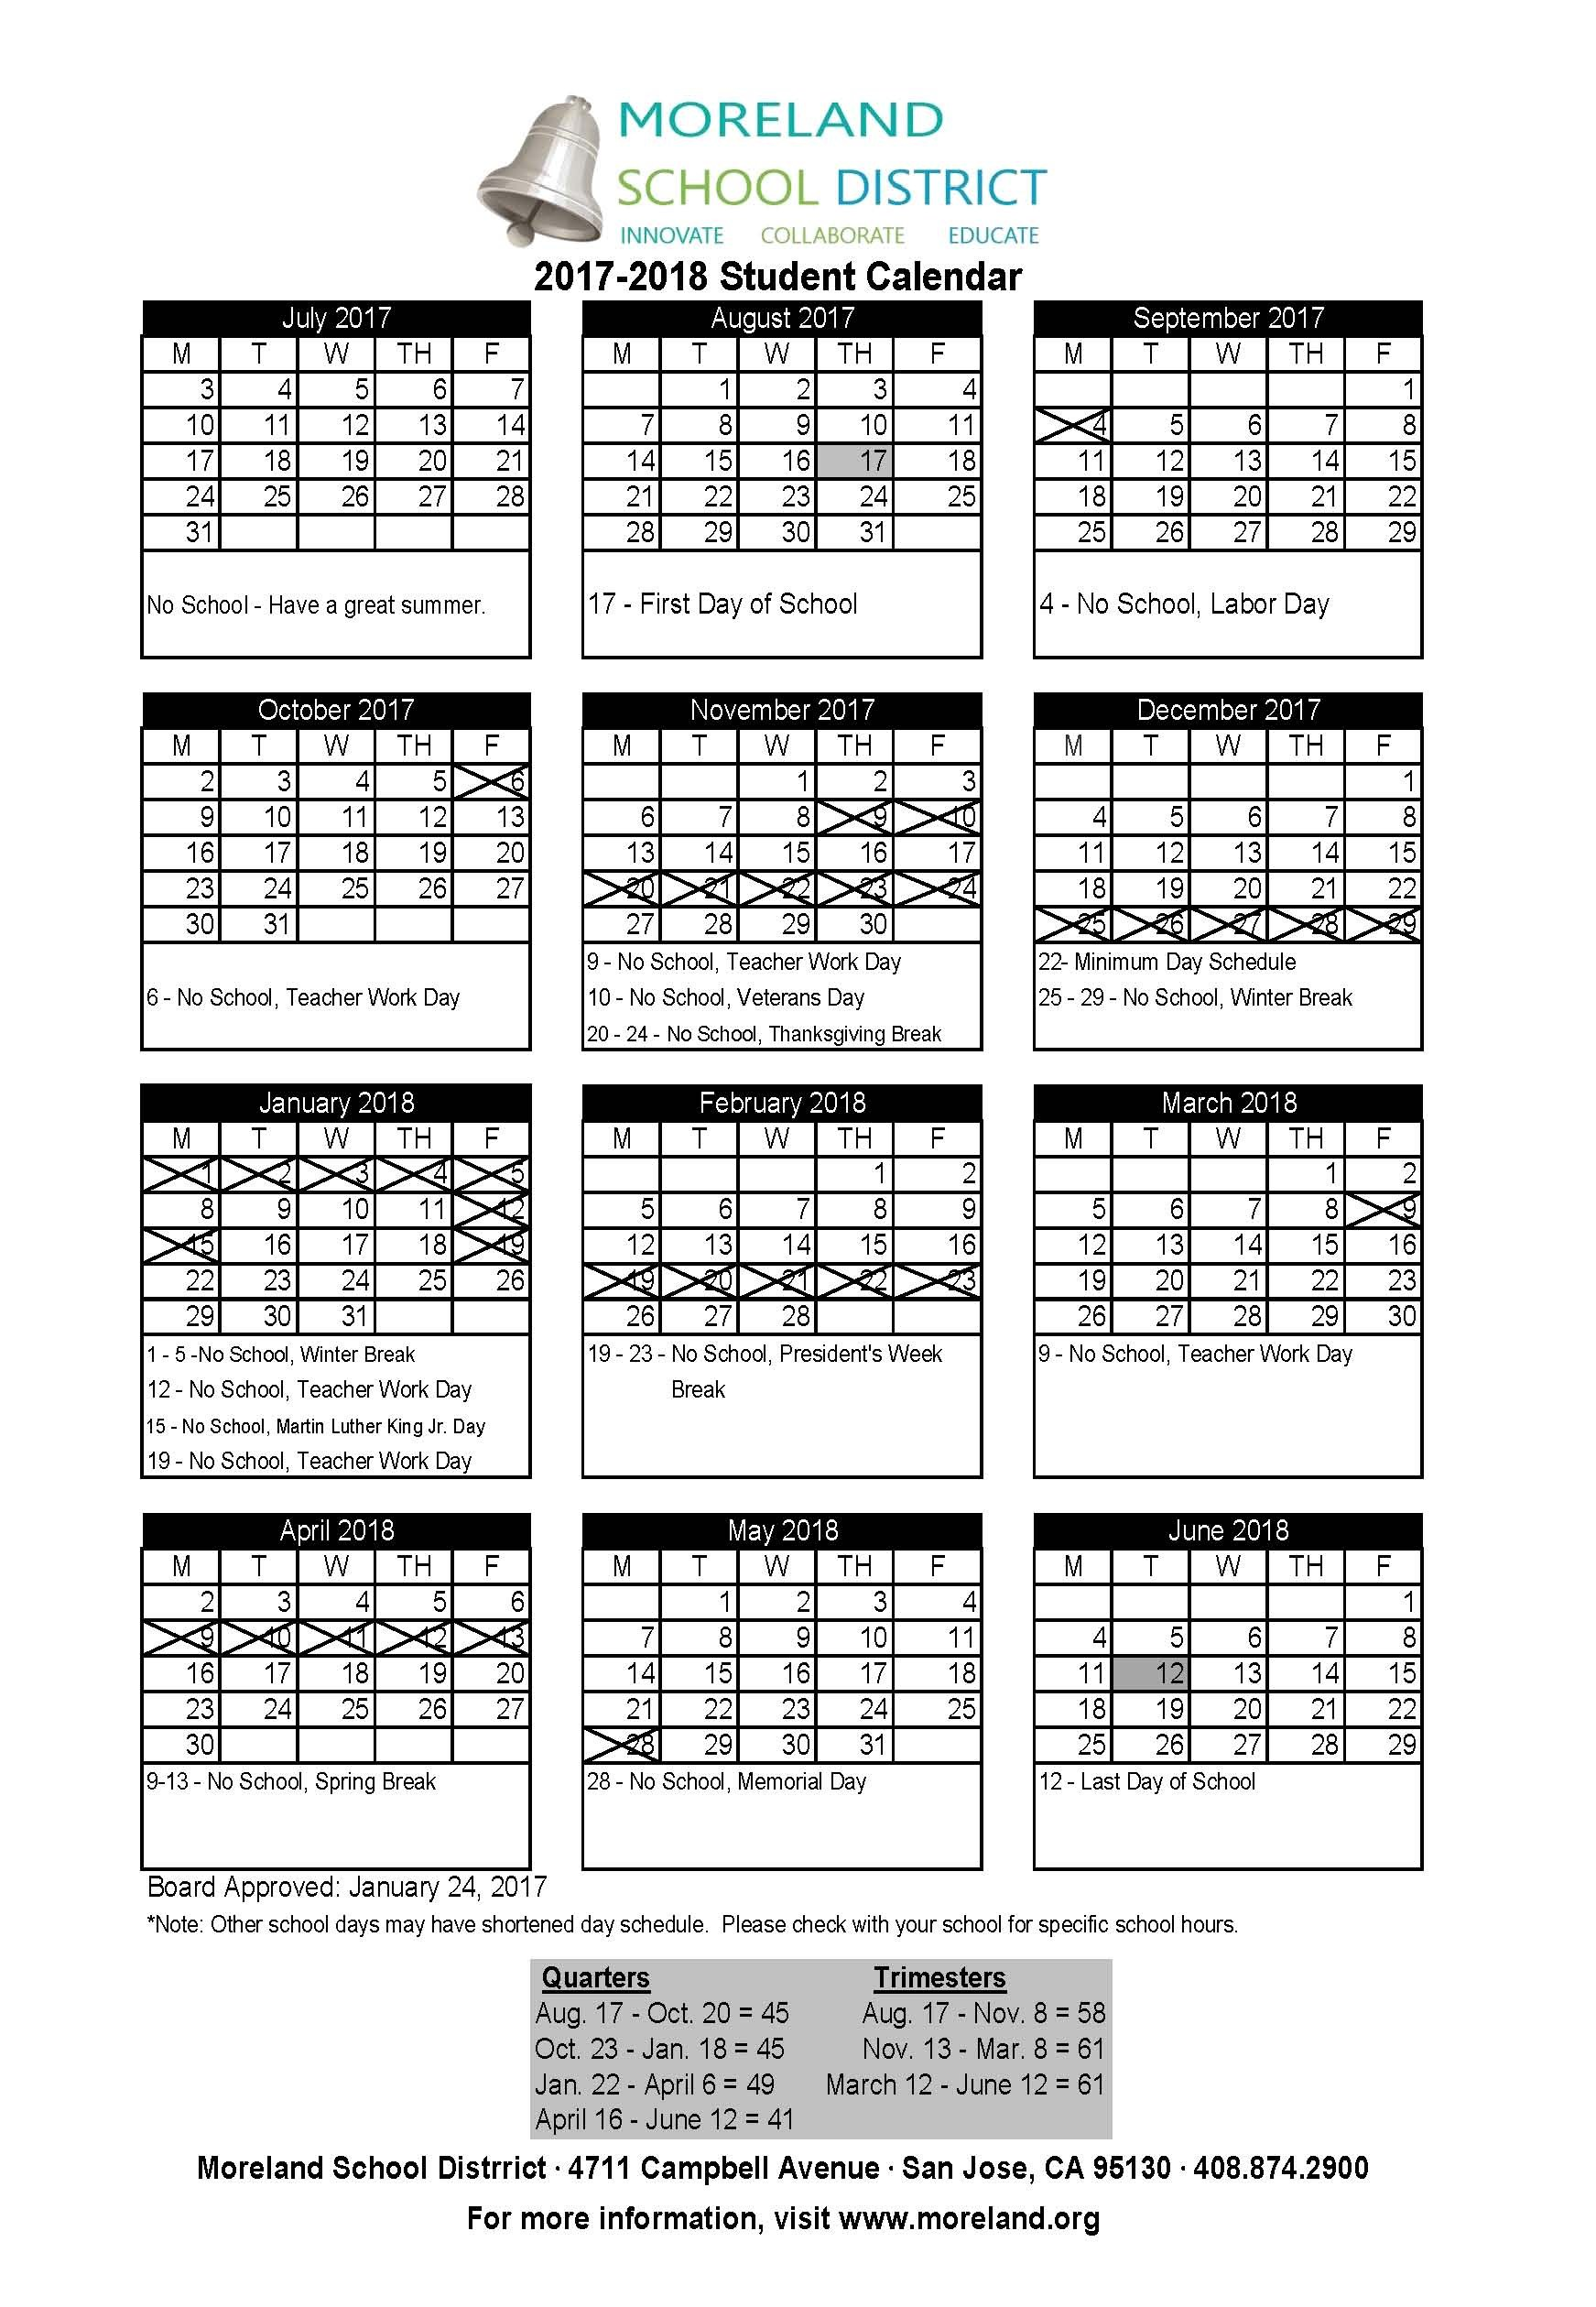 School District Calendar 2017 2018 (MMS school events are on the